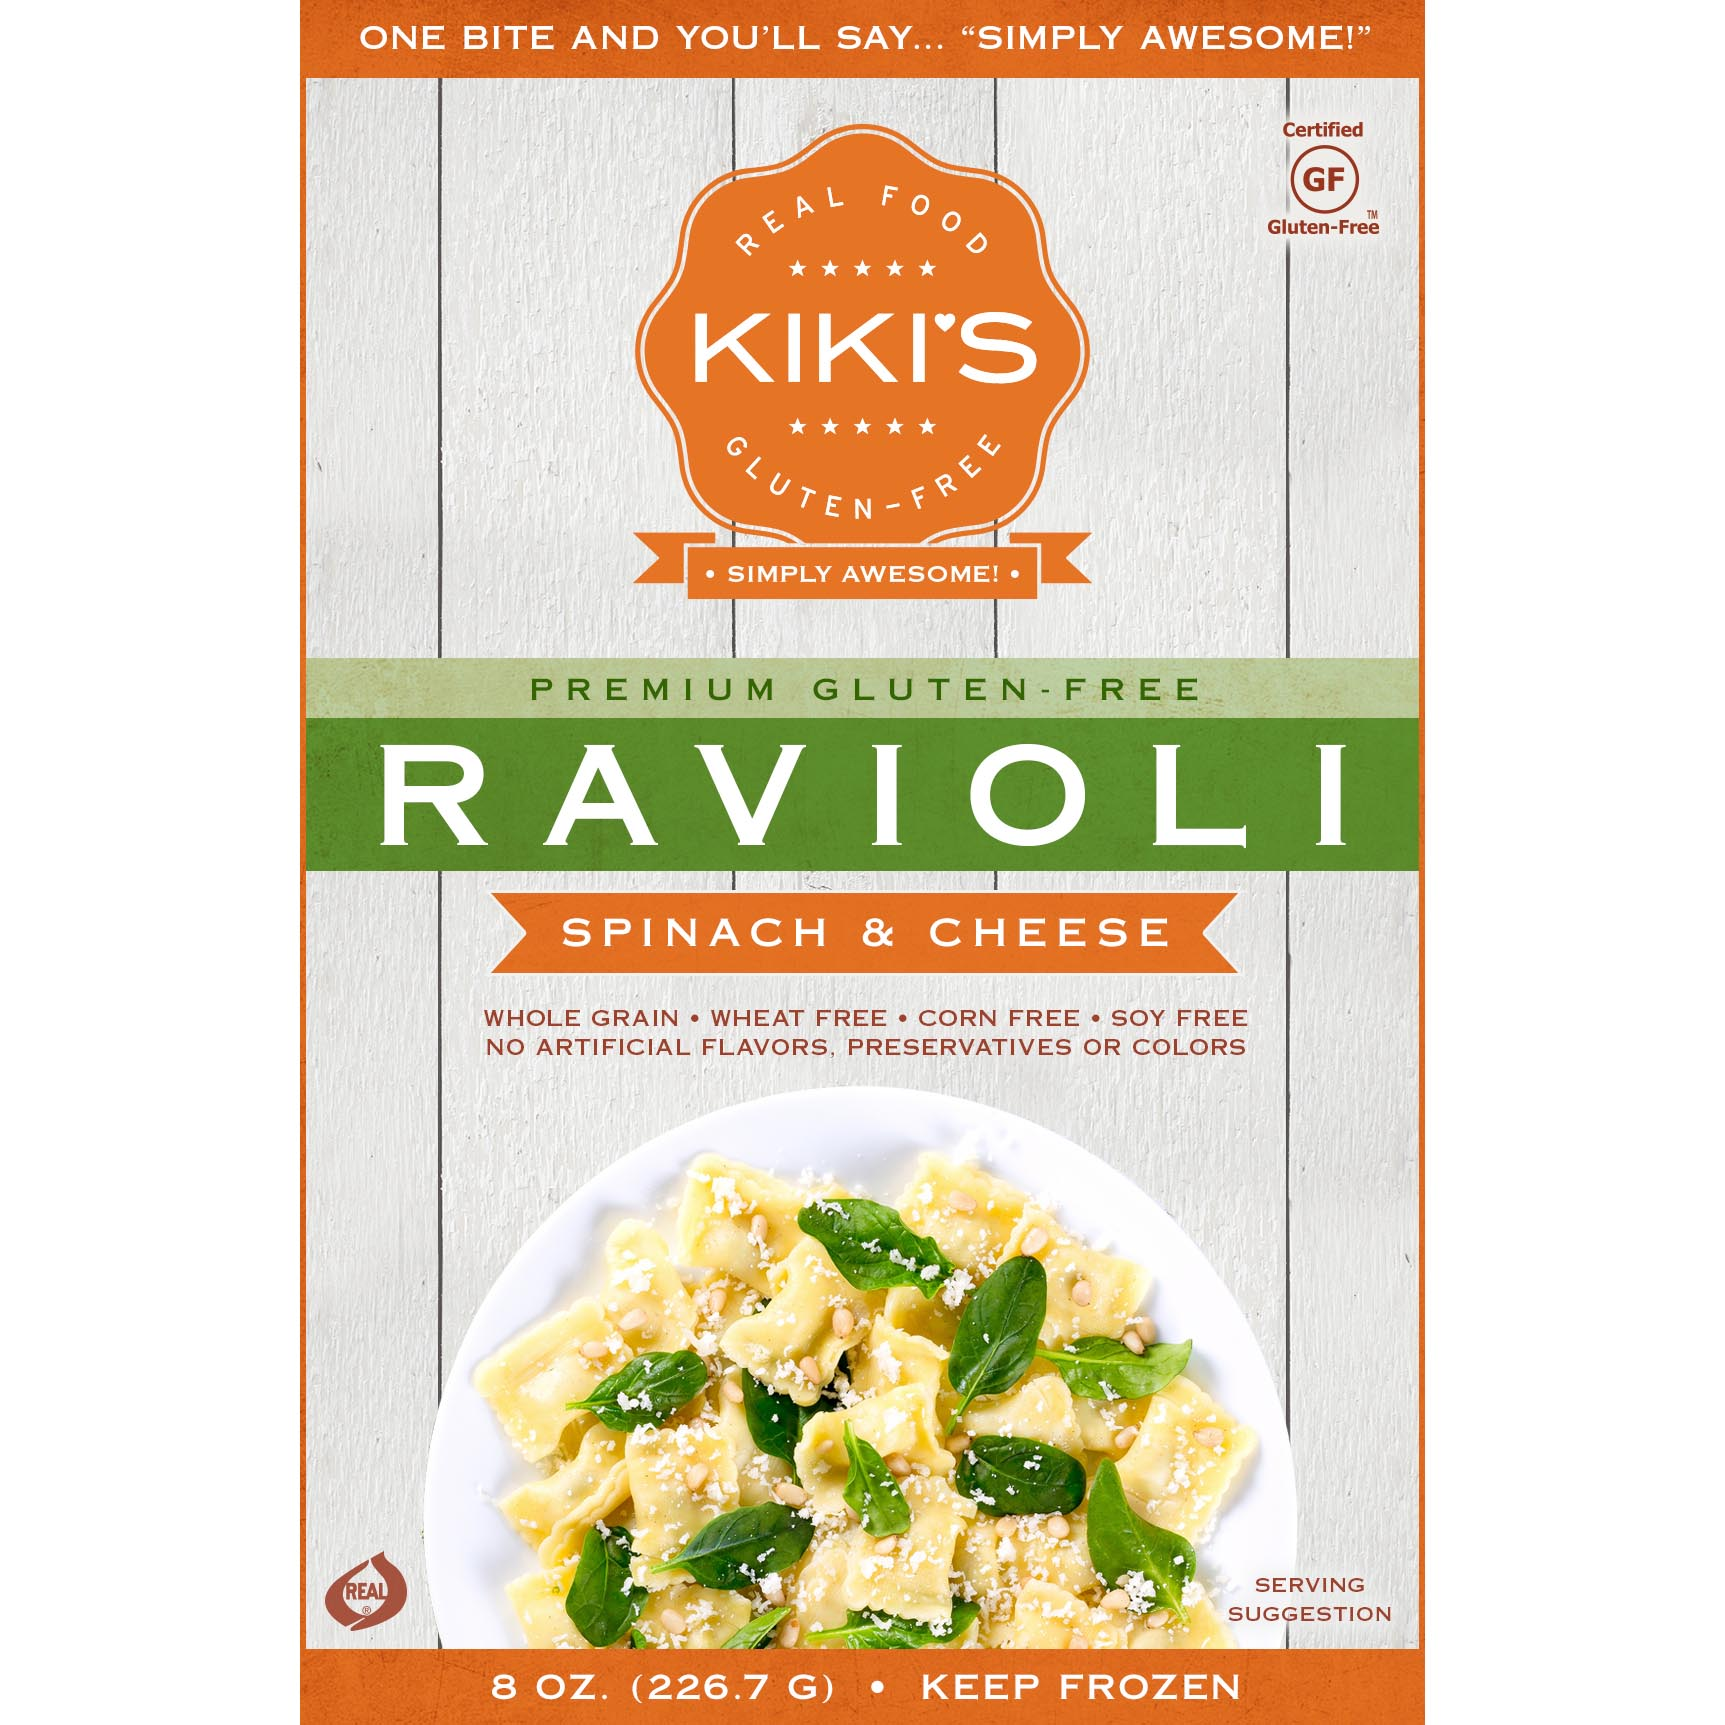 Kiki's Spinach and Cheese Ravioli Square